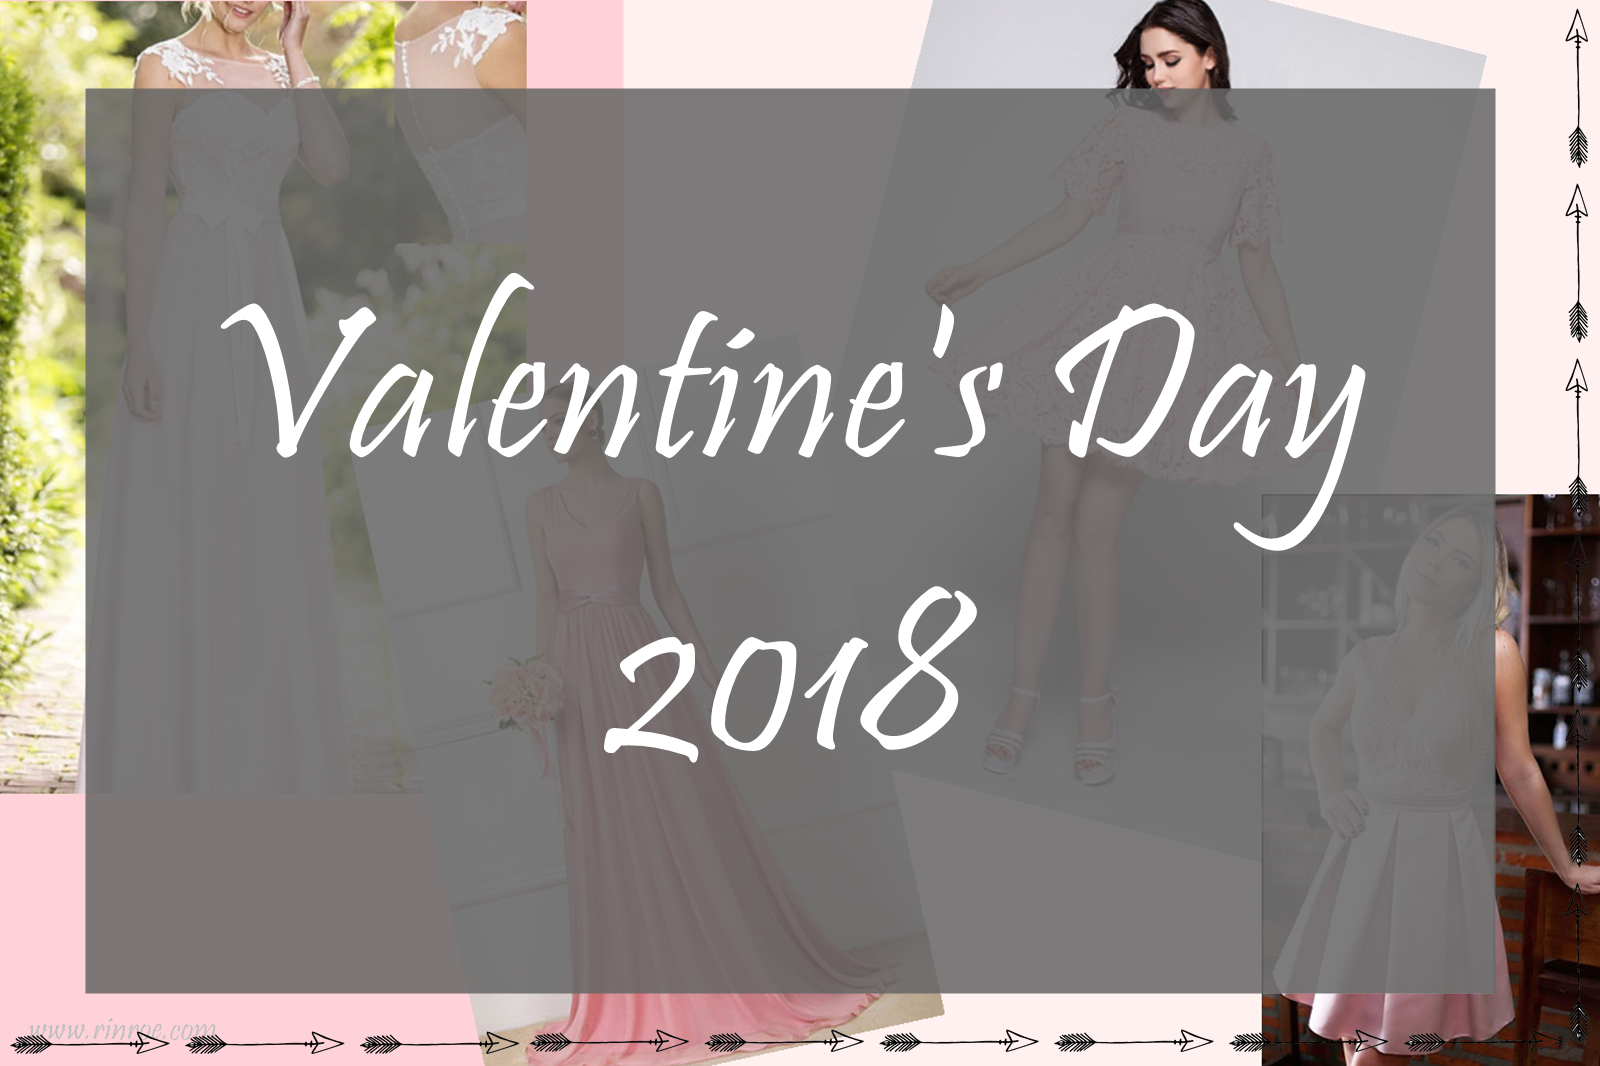 Valentine's Day 2018 by promshopau